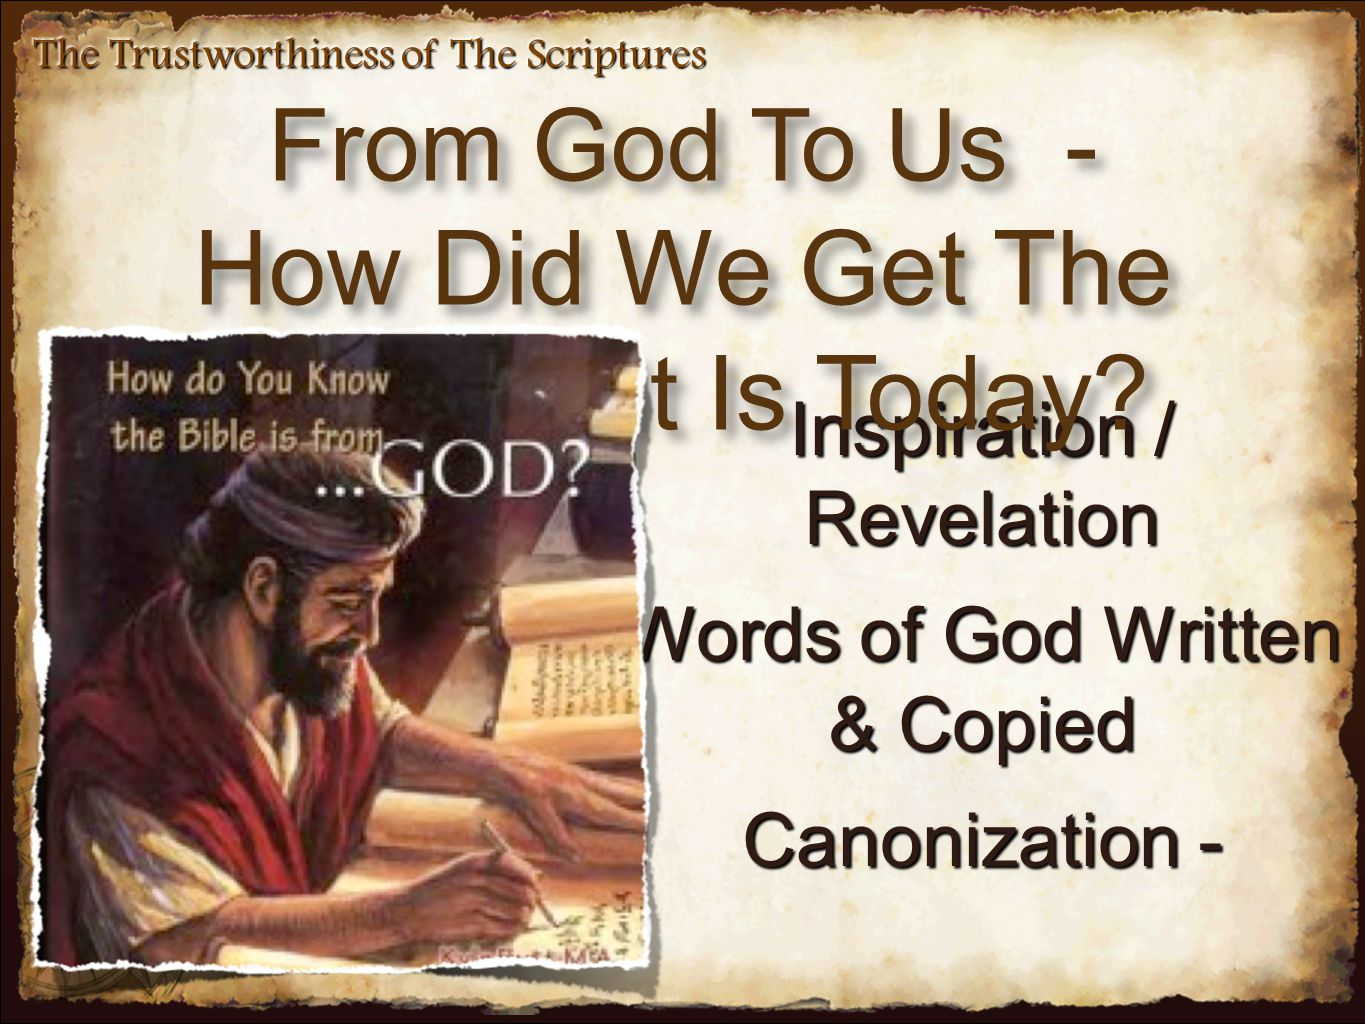 Inspiration / Revelation Words of God Written & Copied Canonization - From God To Us - How Did We Get The Bible As It Is Today? From God To Us - How D